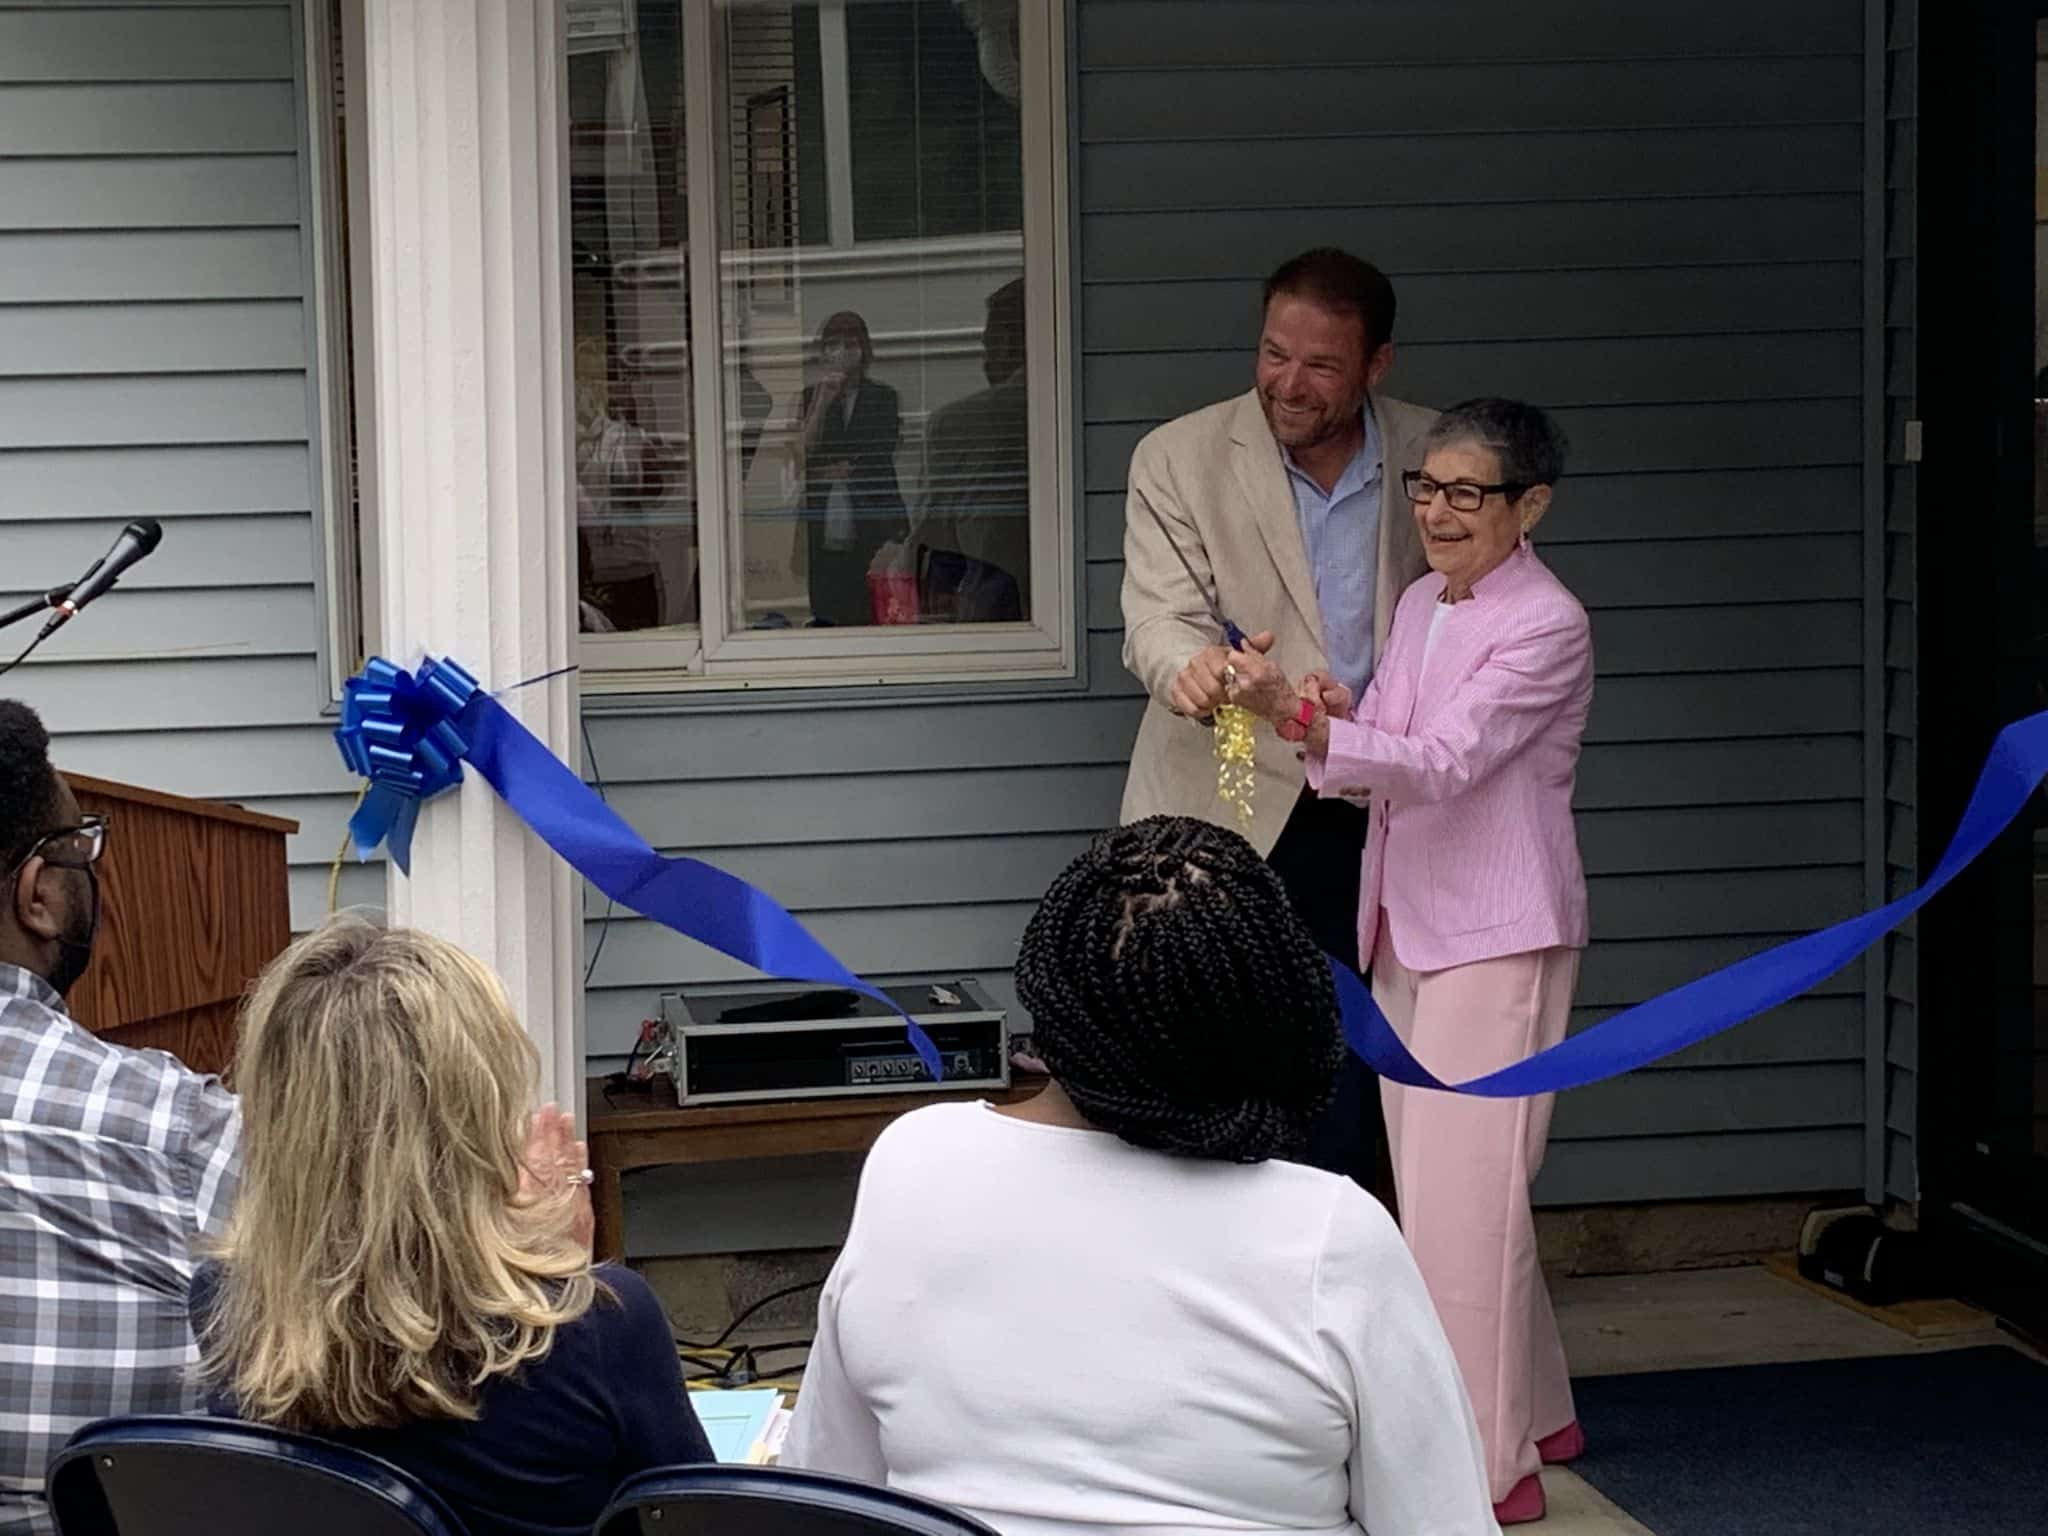 Dr. Jacobs cuts the ribbon